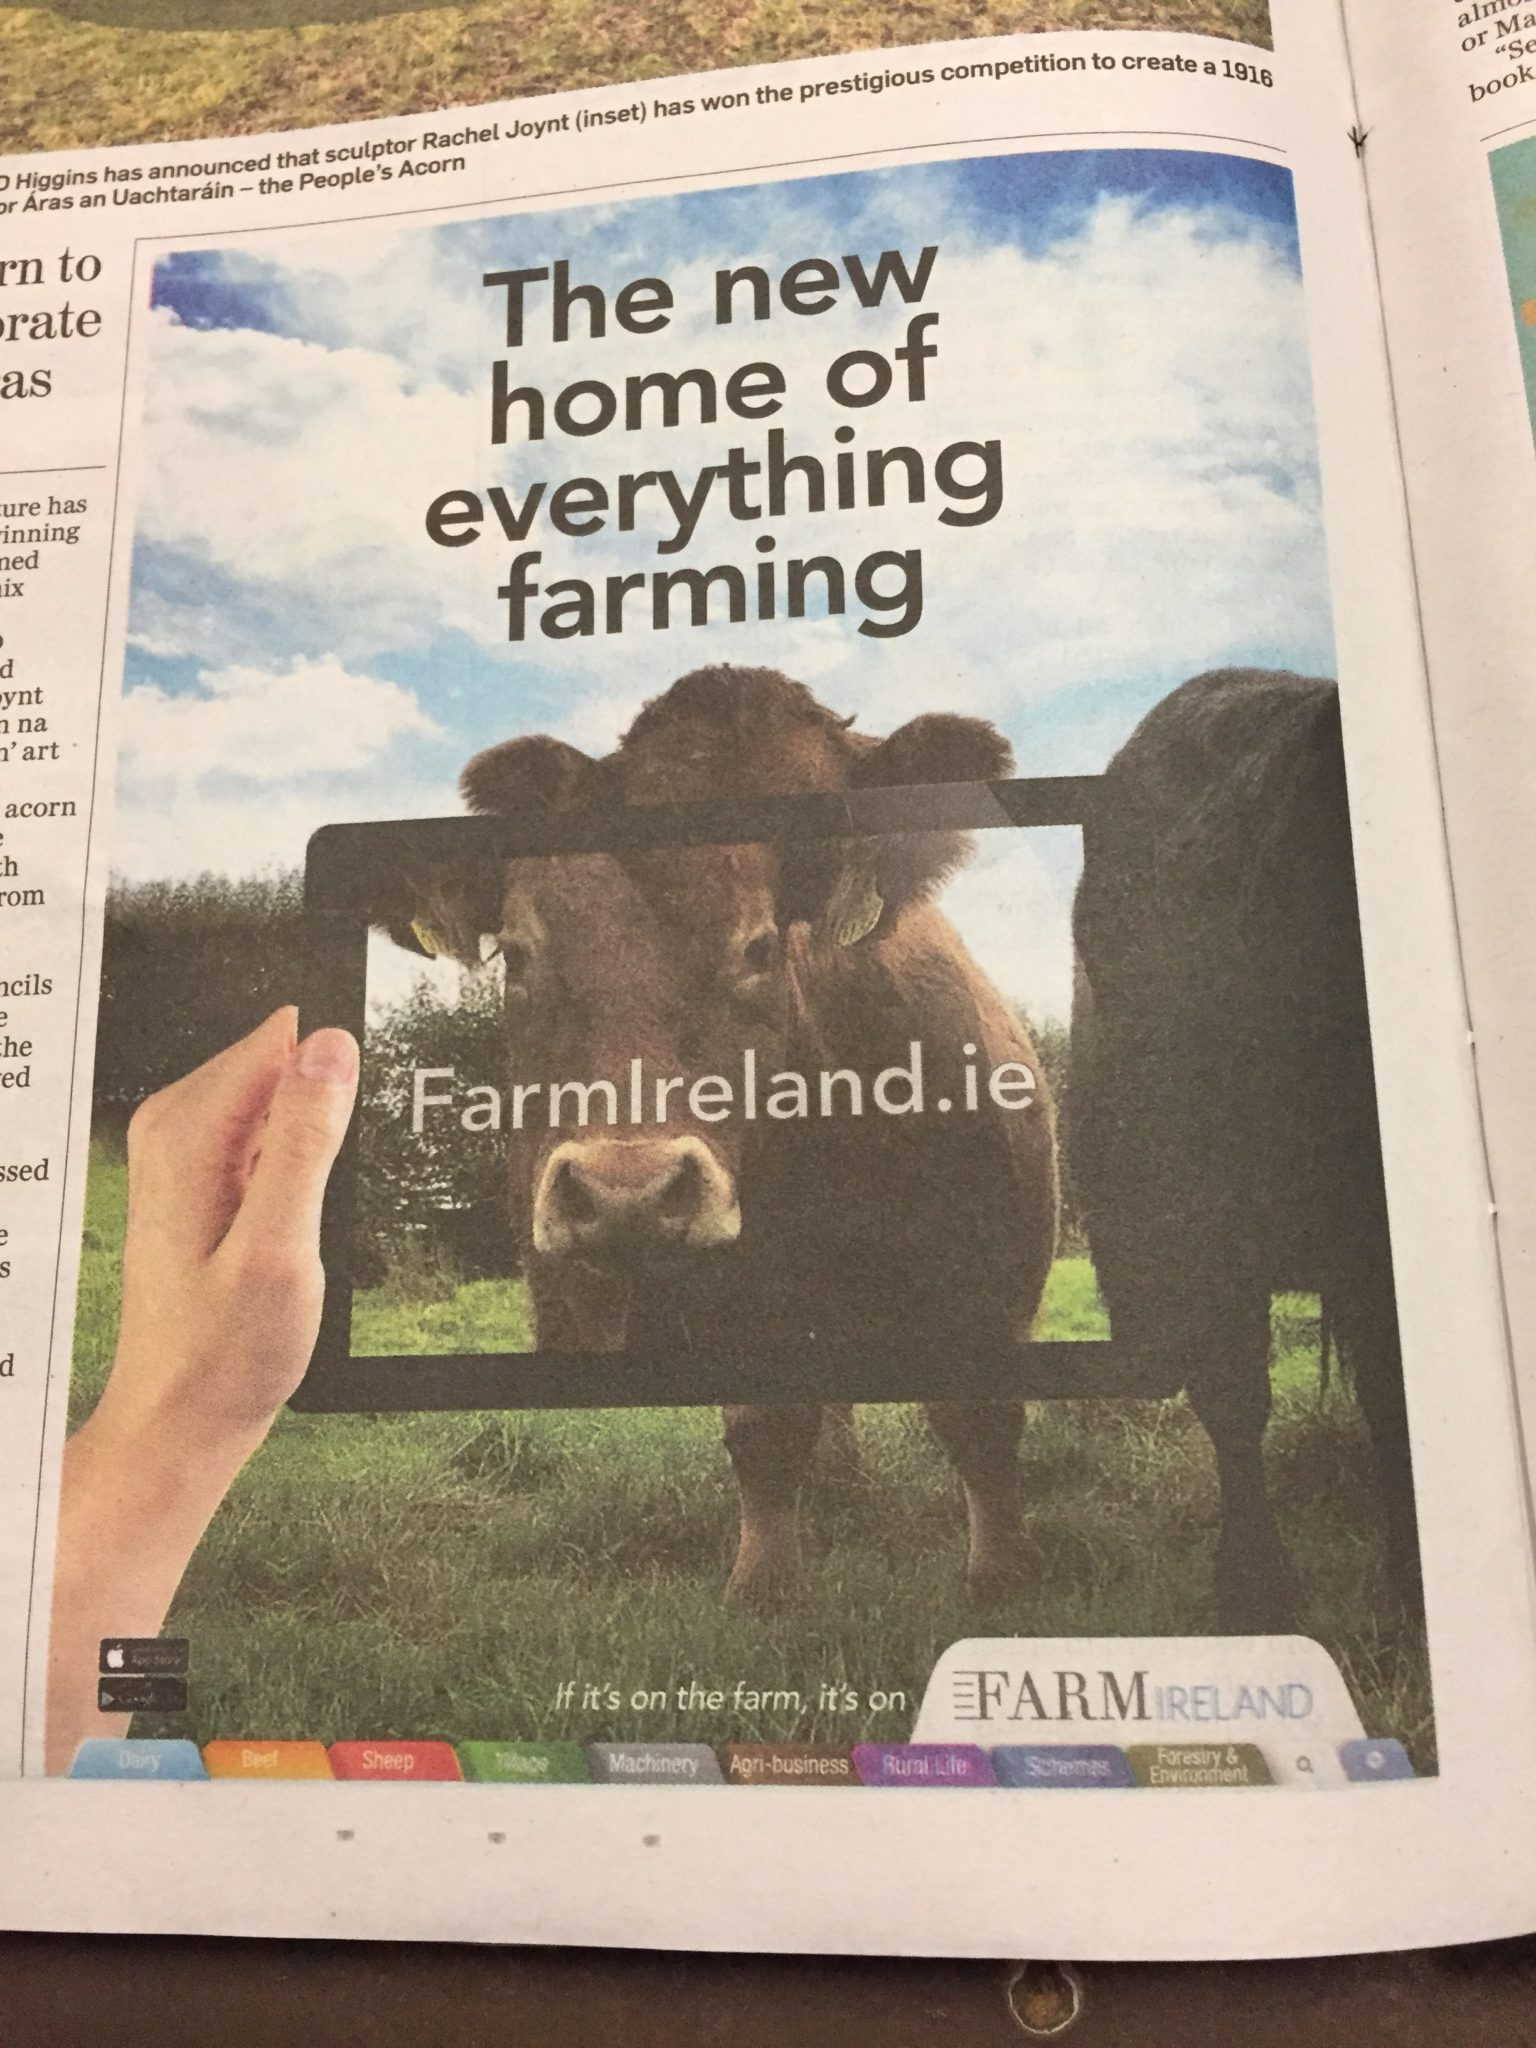 Farm Ireland – the new home of everything farming